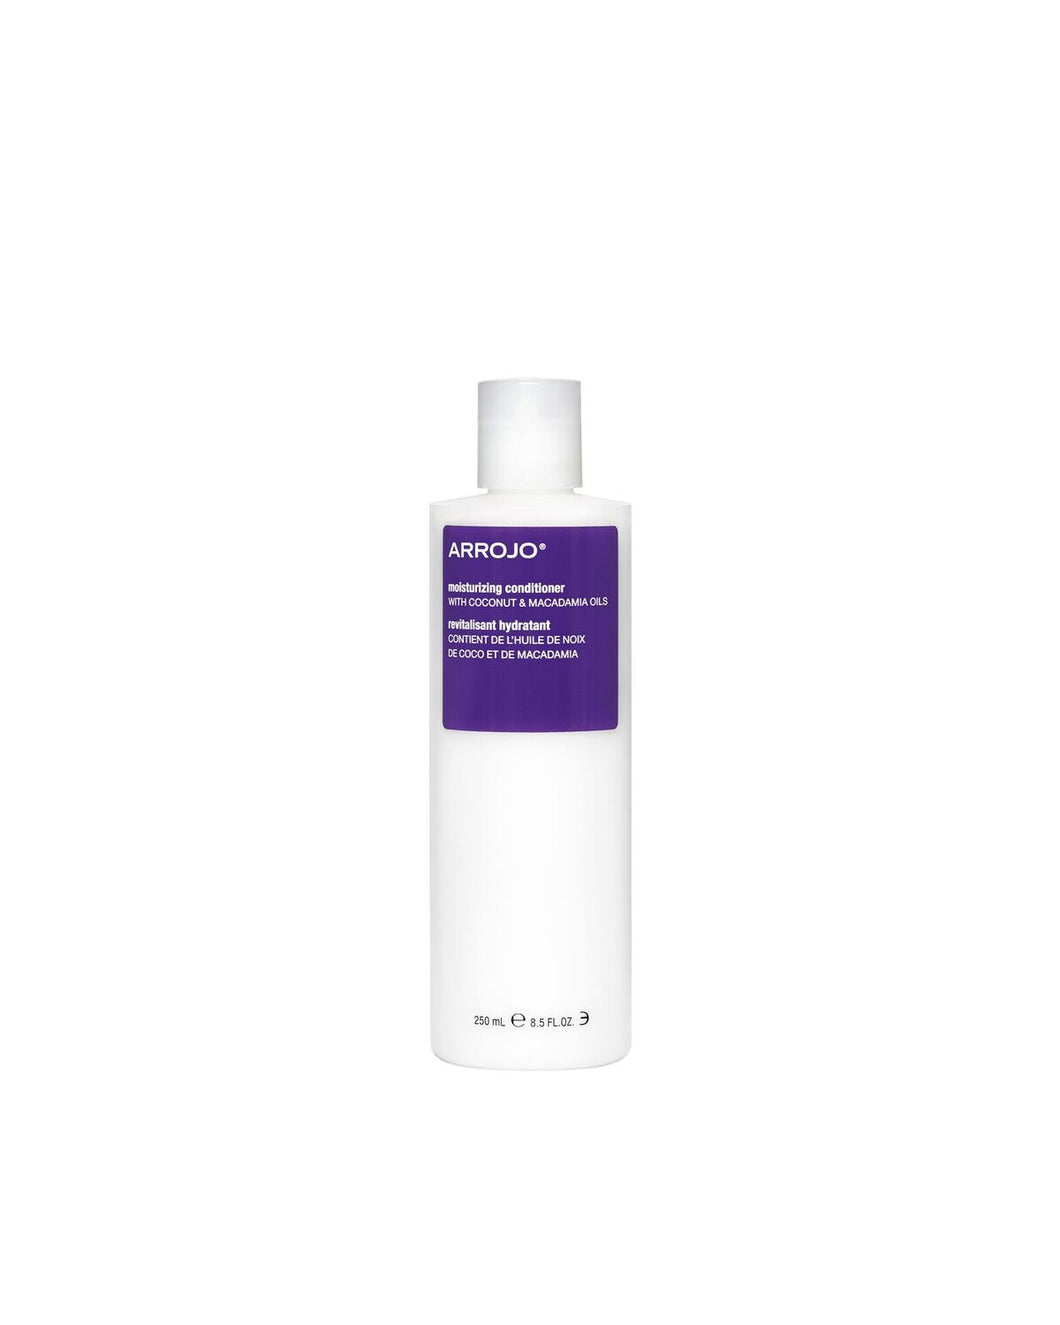 Arrojo Moisturizing Conditioner